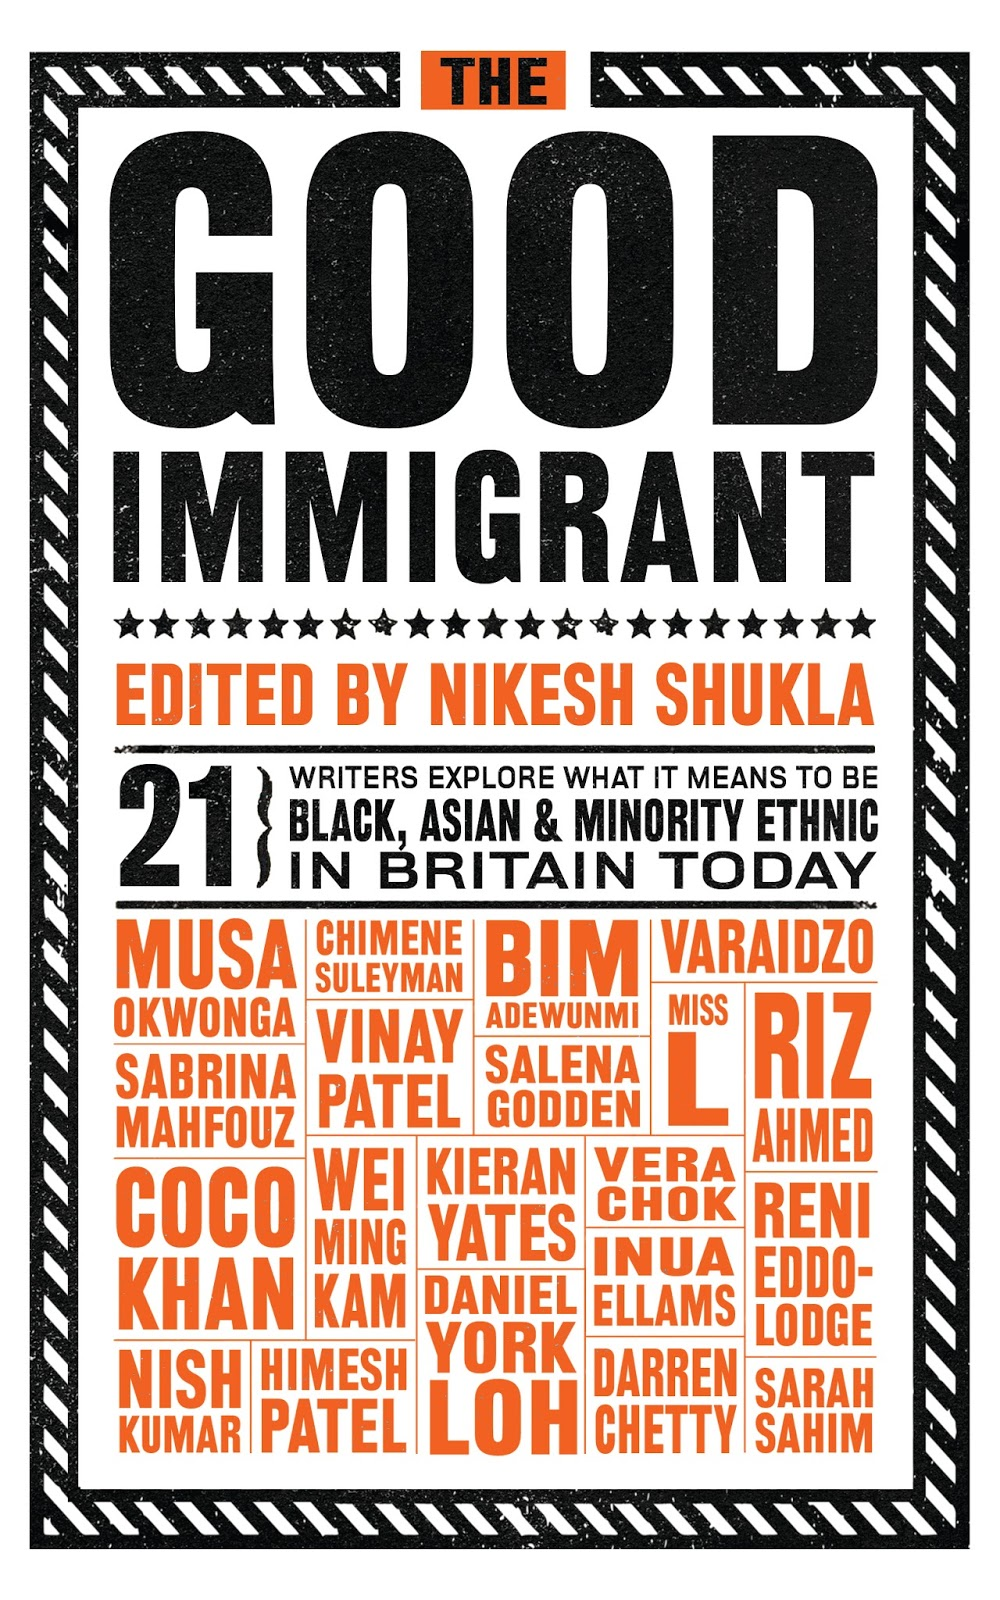 Cover of book 'The Good Immigrant'